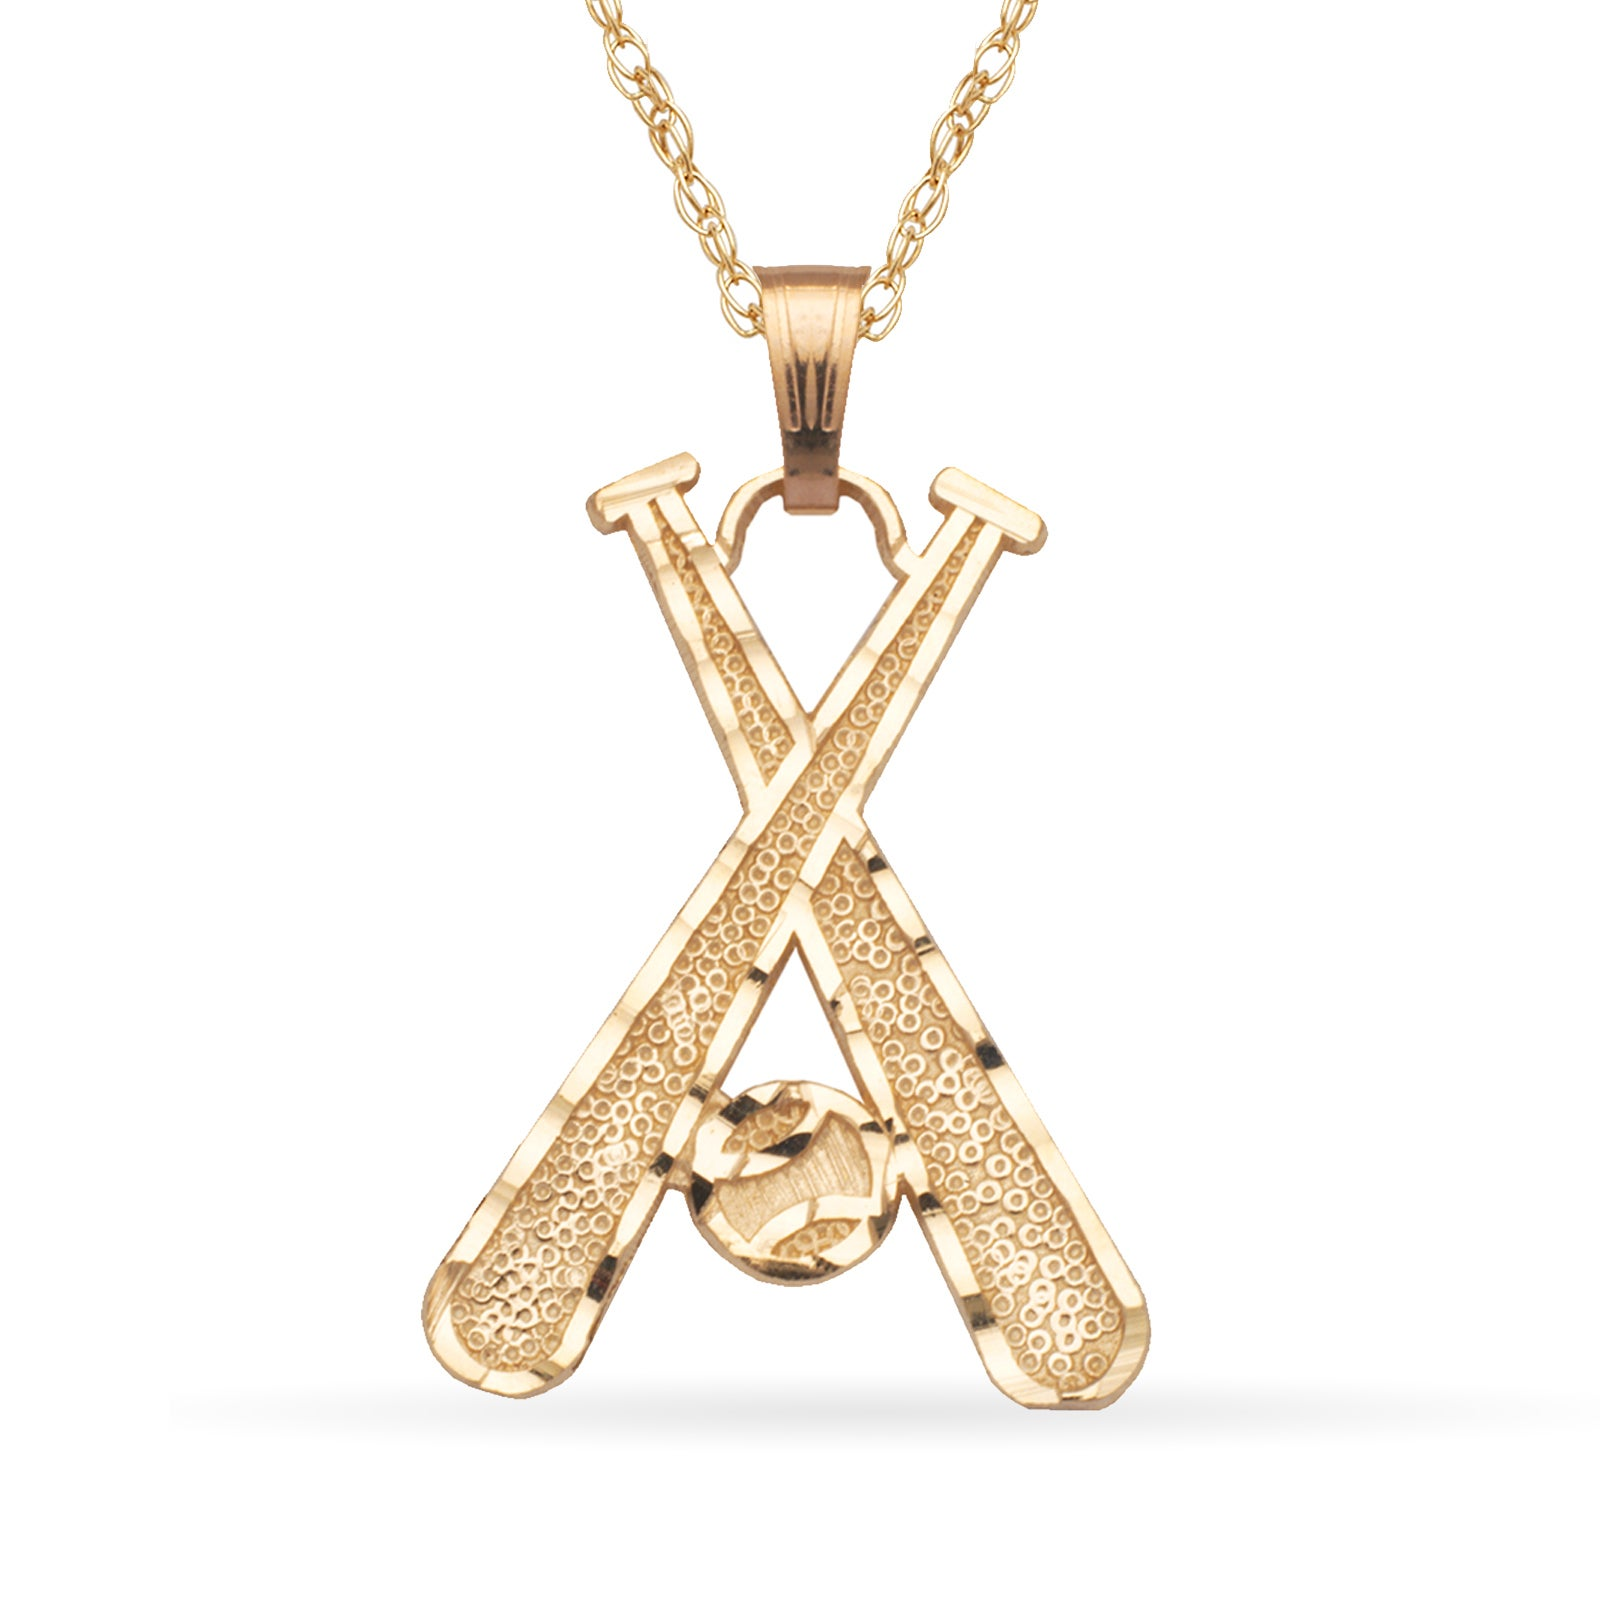 fivetool necklace myshoplah cross baseball bat pendant